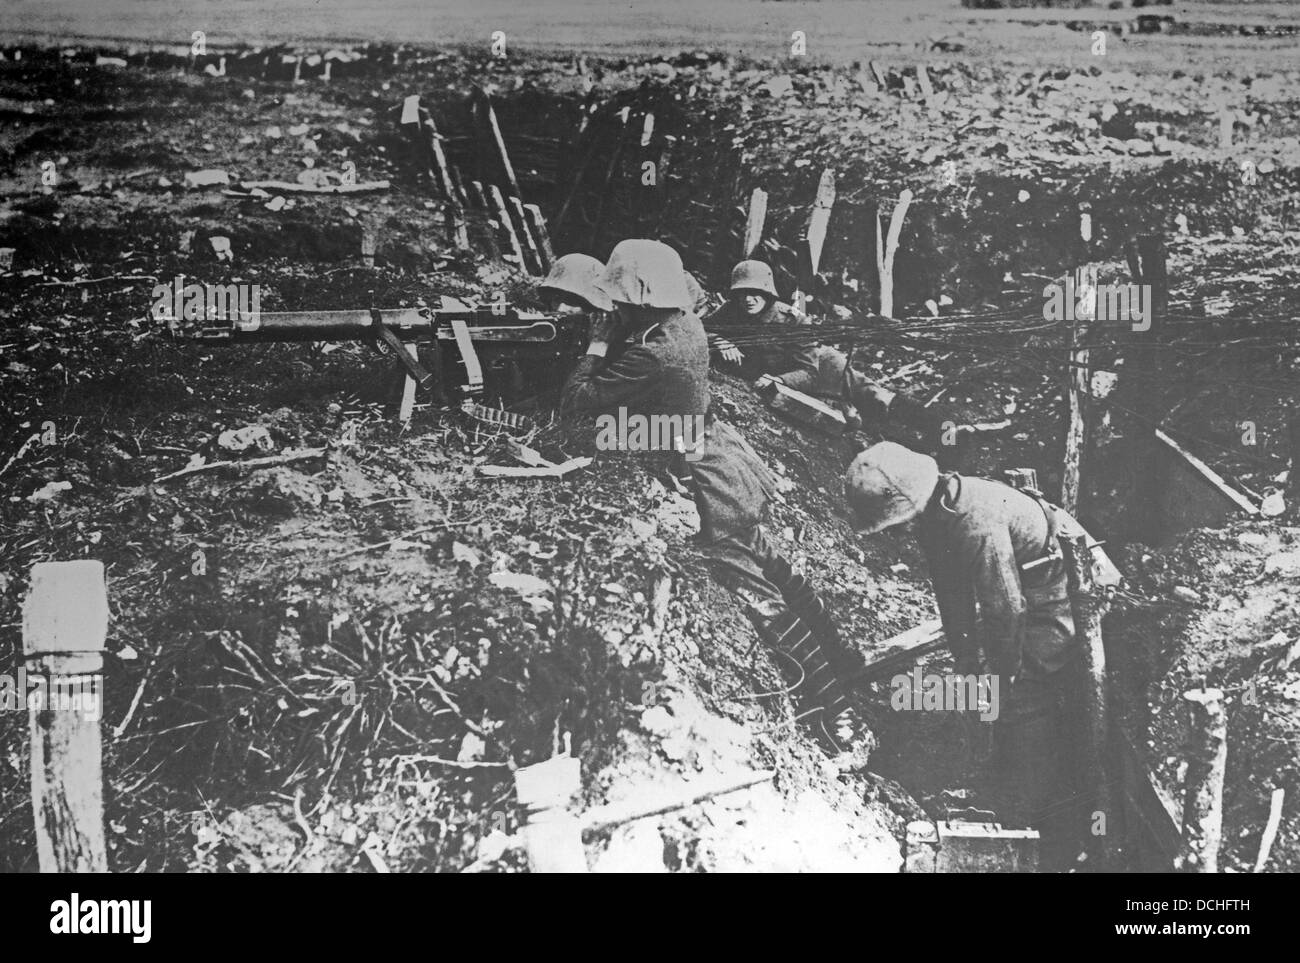 Trench warfare during First World War - Stock Image